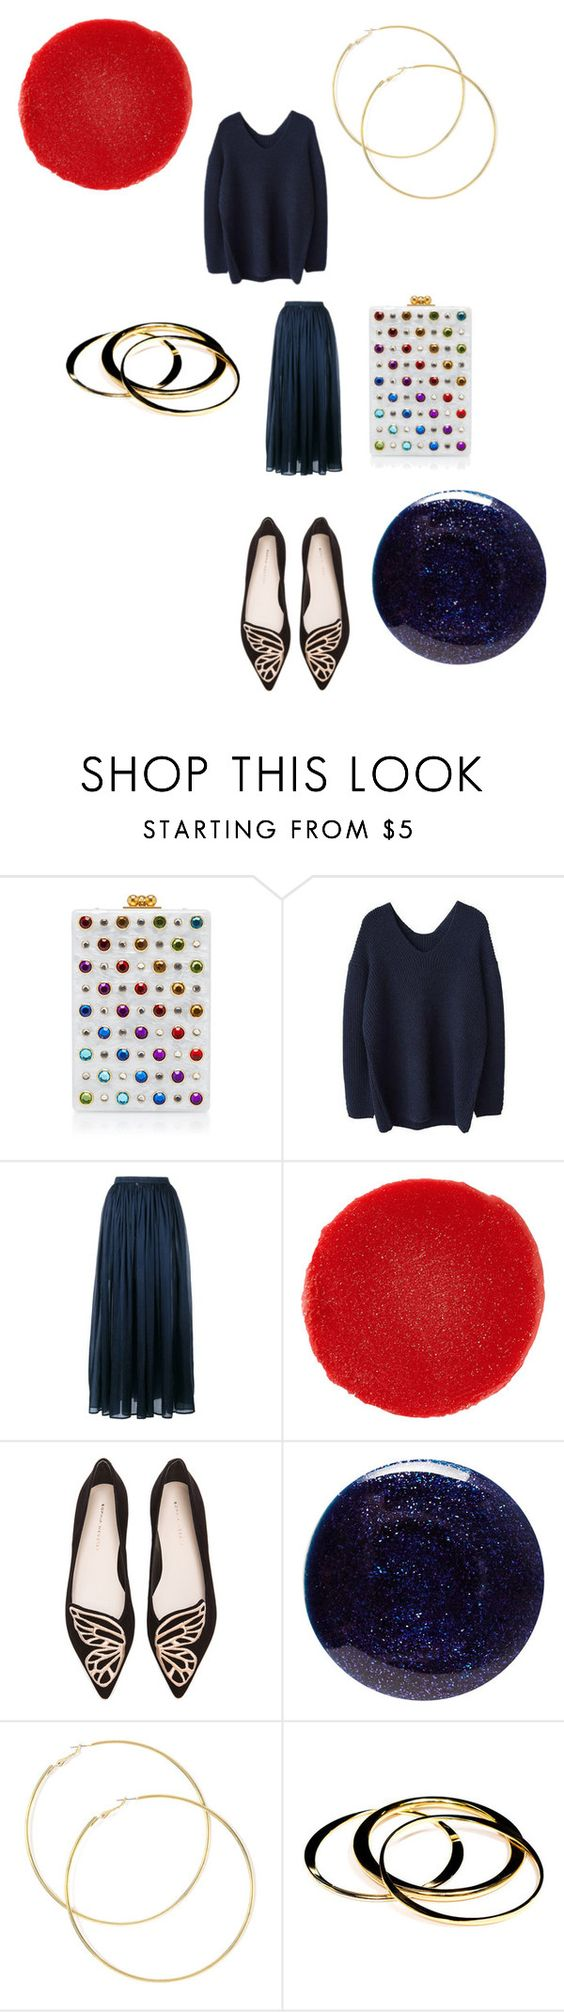 """A dash of color!"" by alisafranklin on Polyvore featuring Edie Parker, Mes Demoiselles..., Christian Louboutin, Sophia Webster, Lauren B. Beauty and Janna Conner"